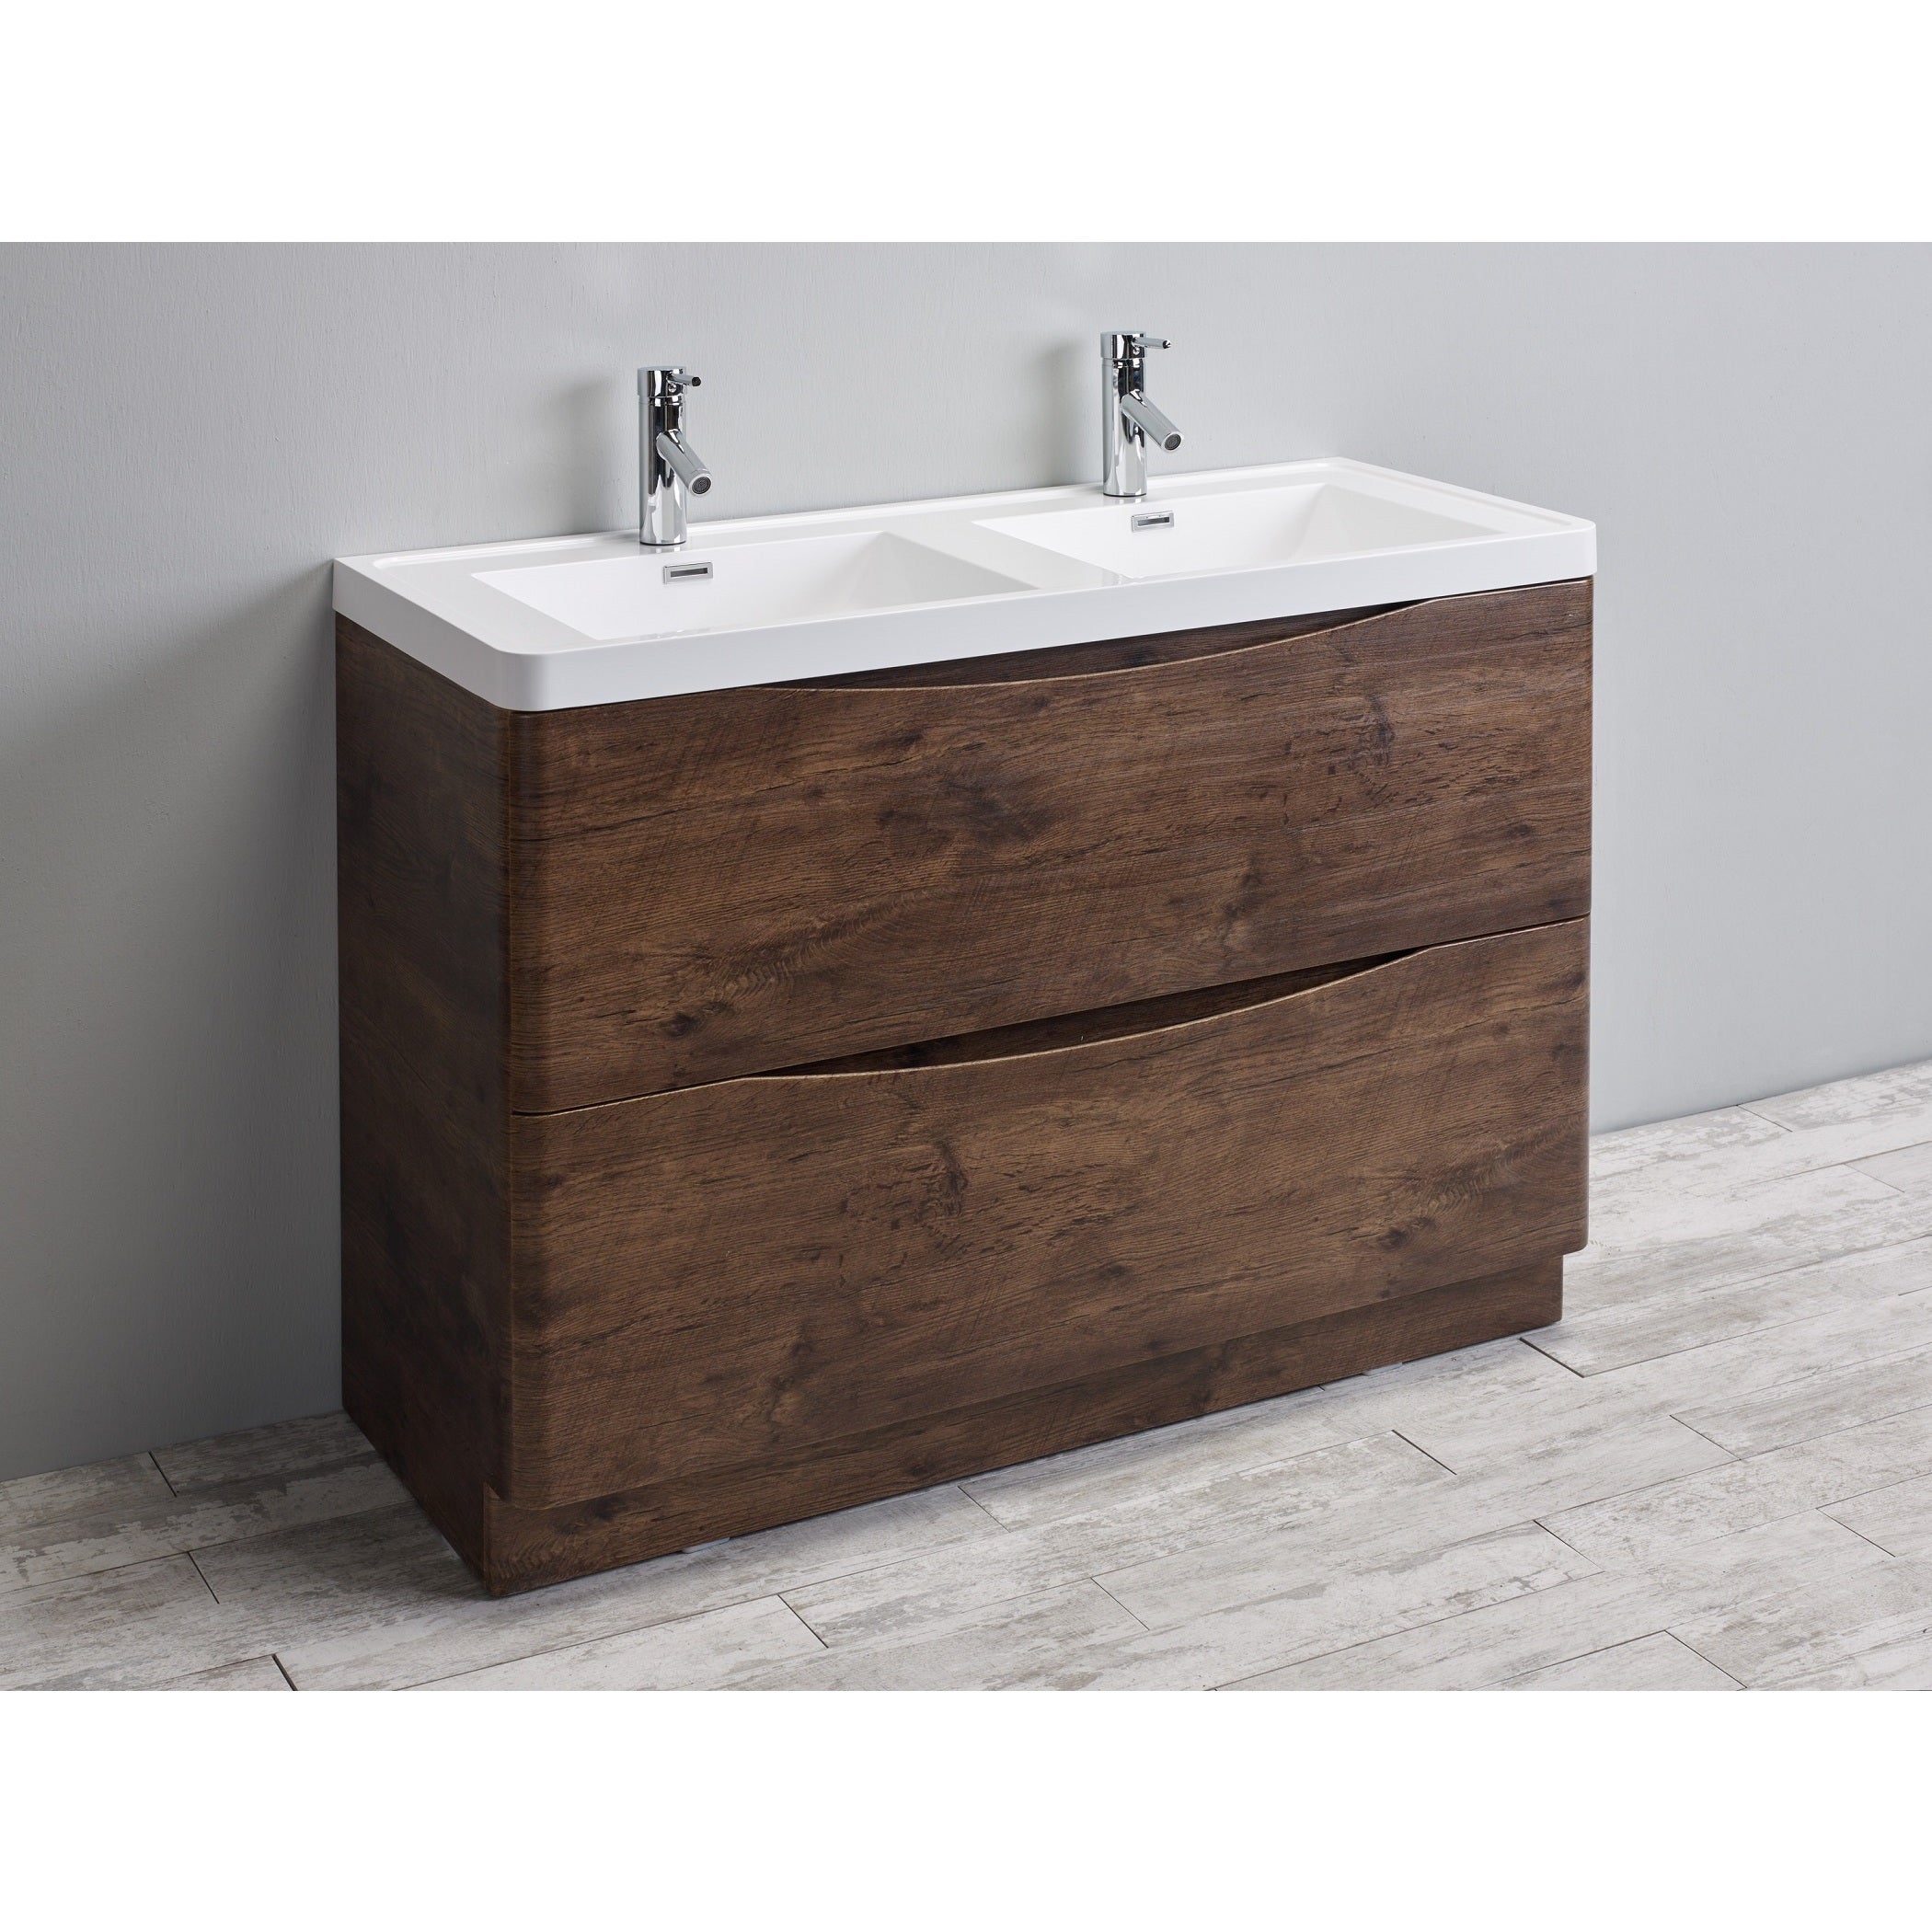 Eviva Smile 48 Inch Rosewood Modern Bathroom Vanity Set With Integrated White Acrylic Double Sink Free Shipping Today 10951754